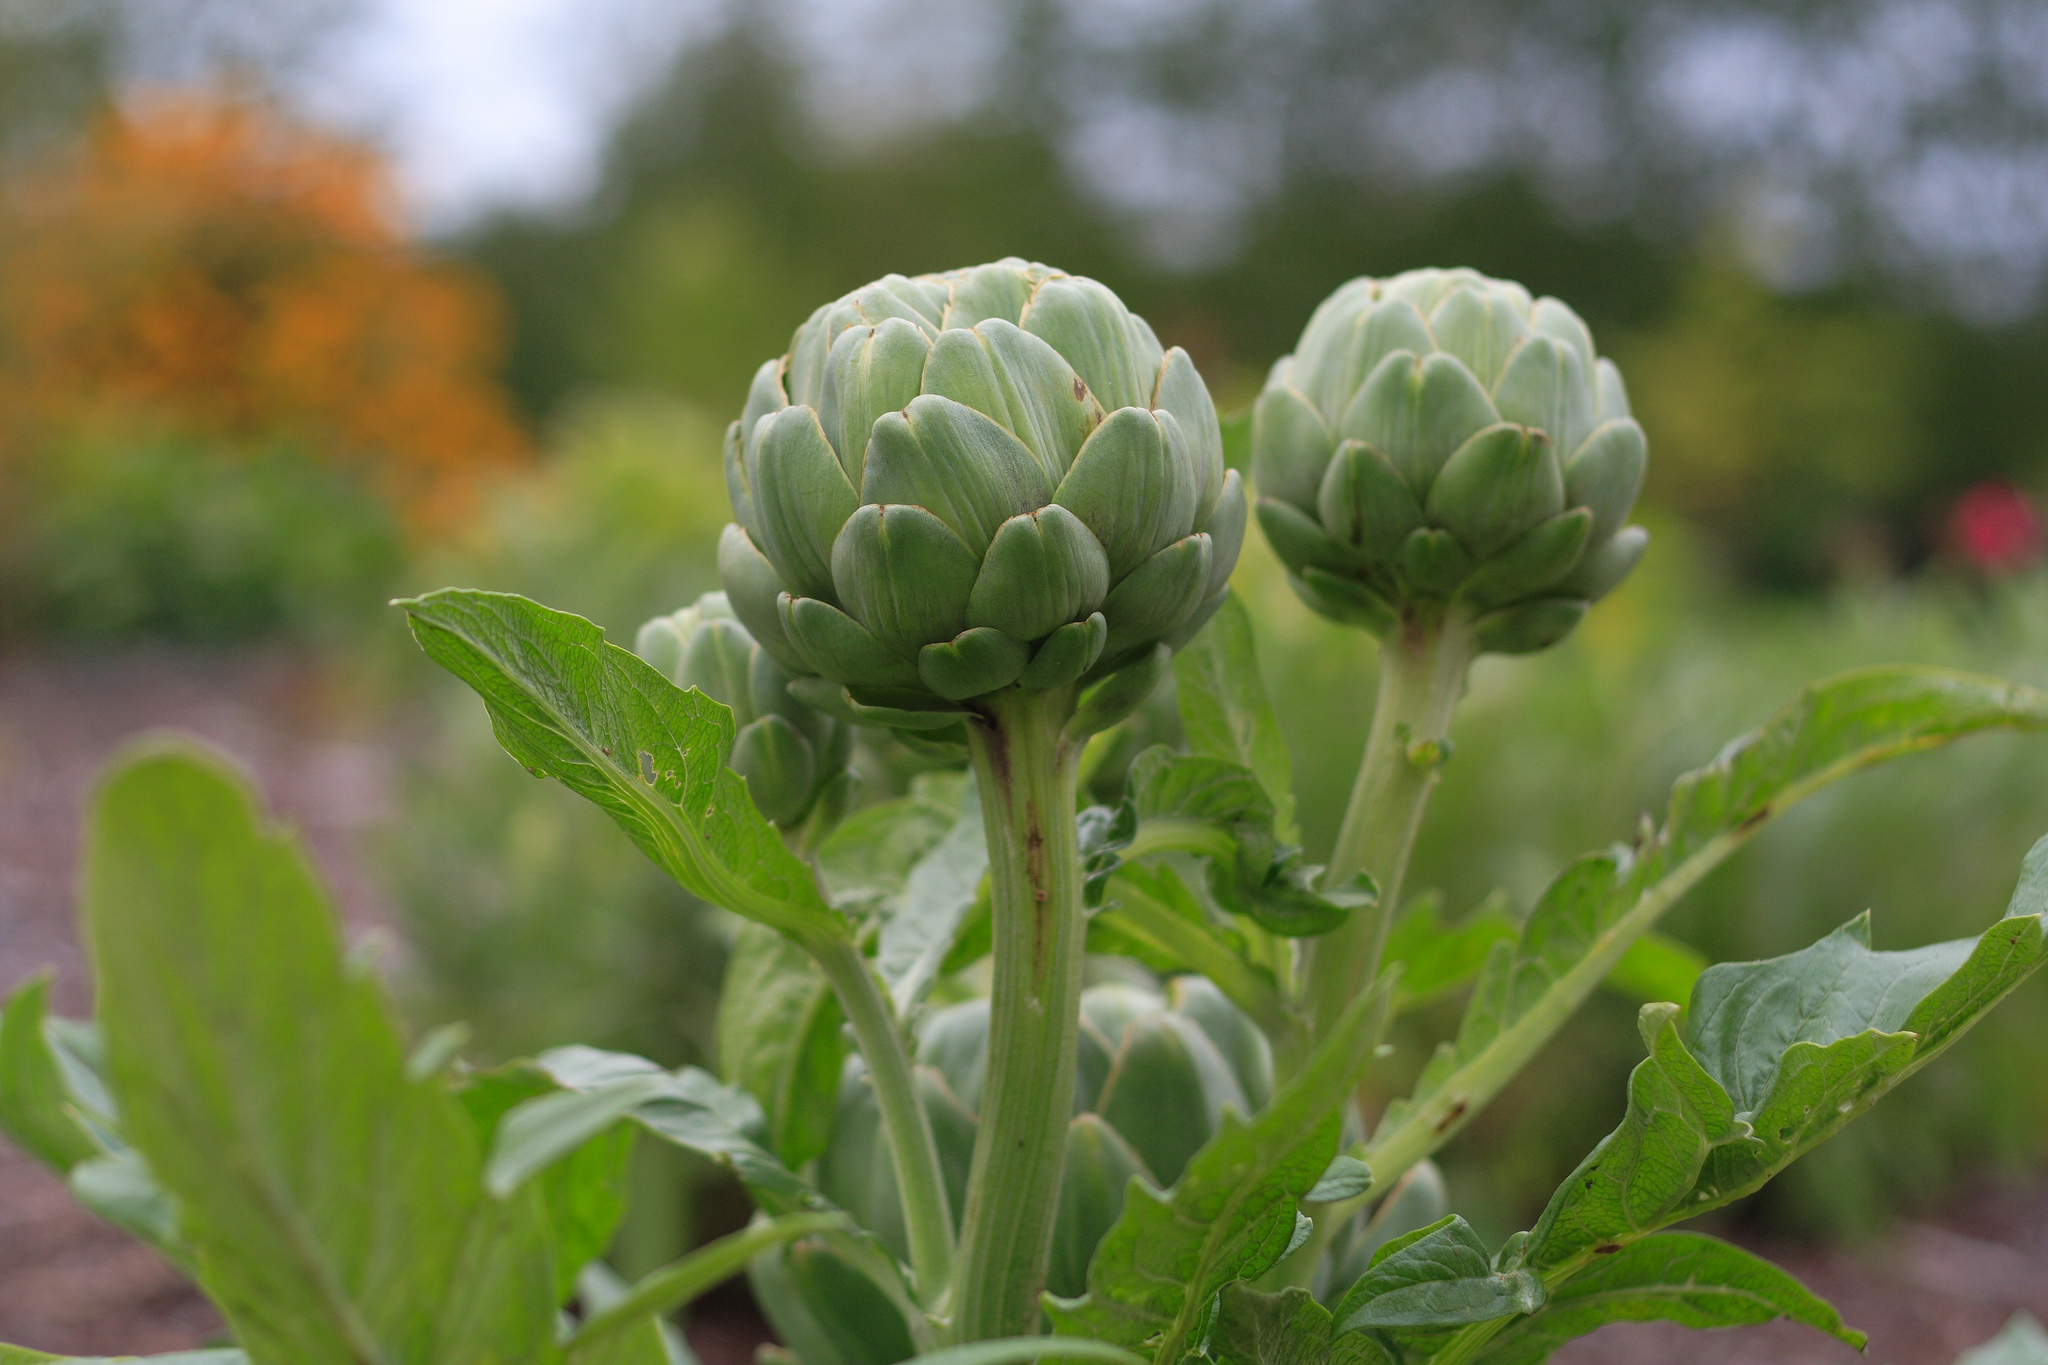 Growing artichokes: Peeling off the mystery